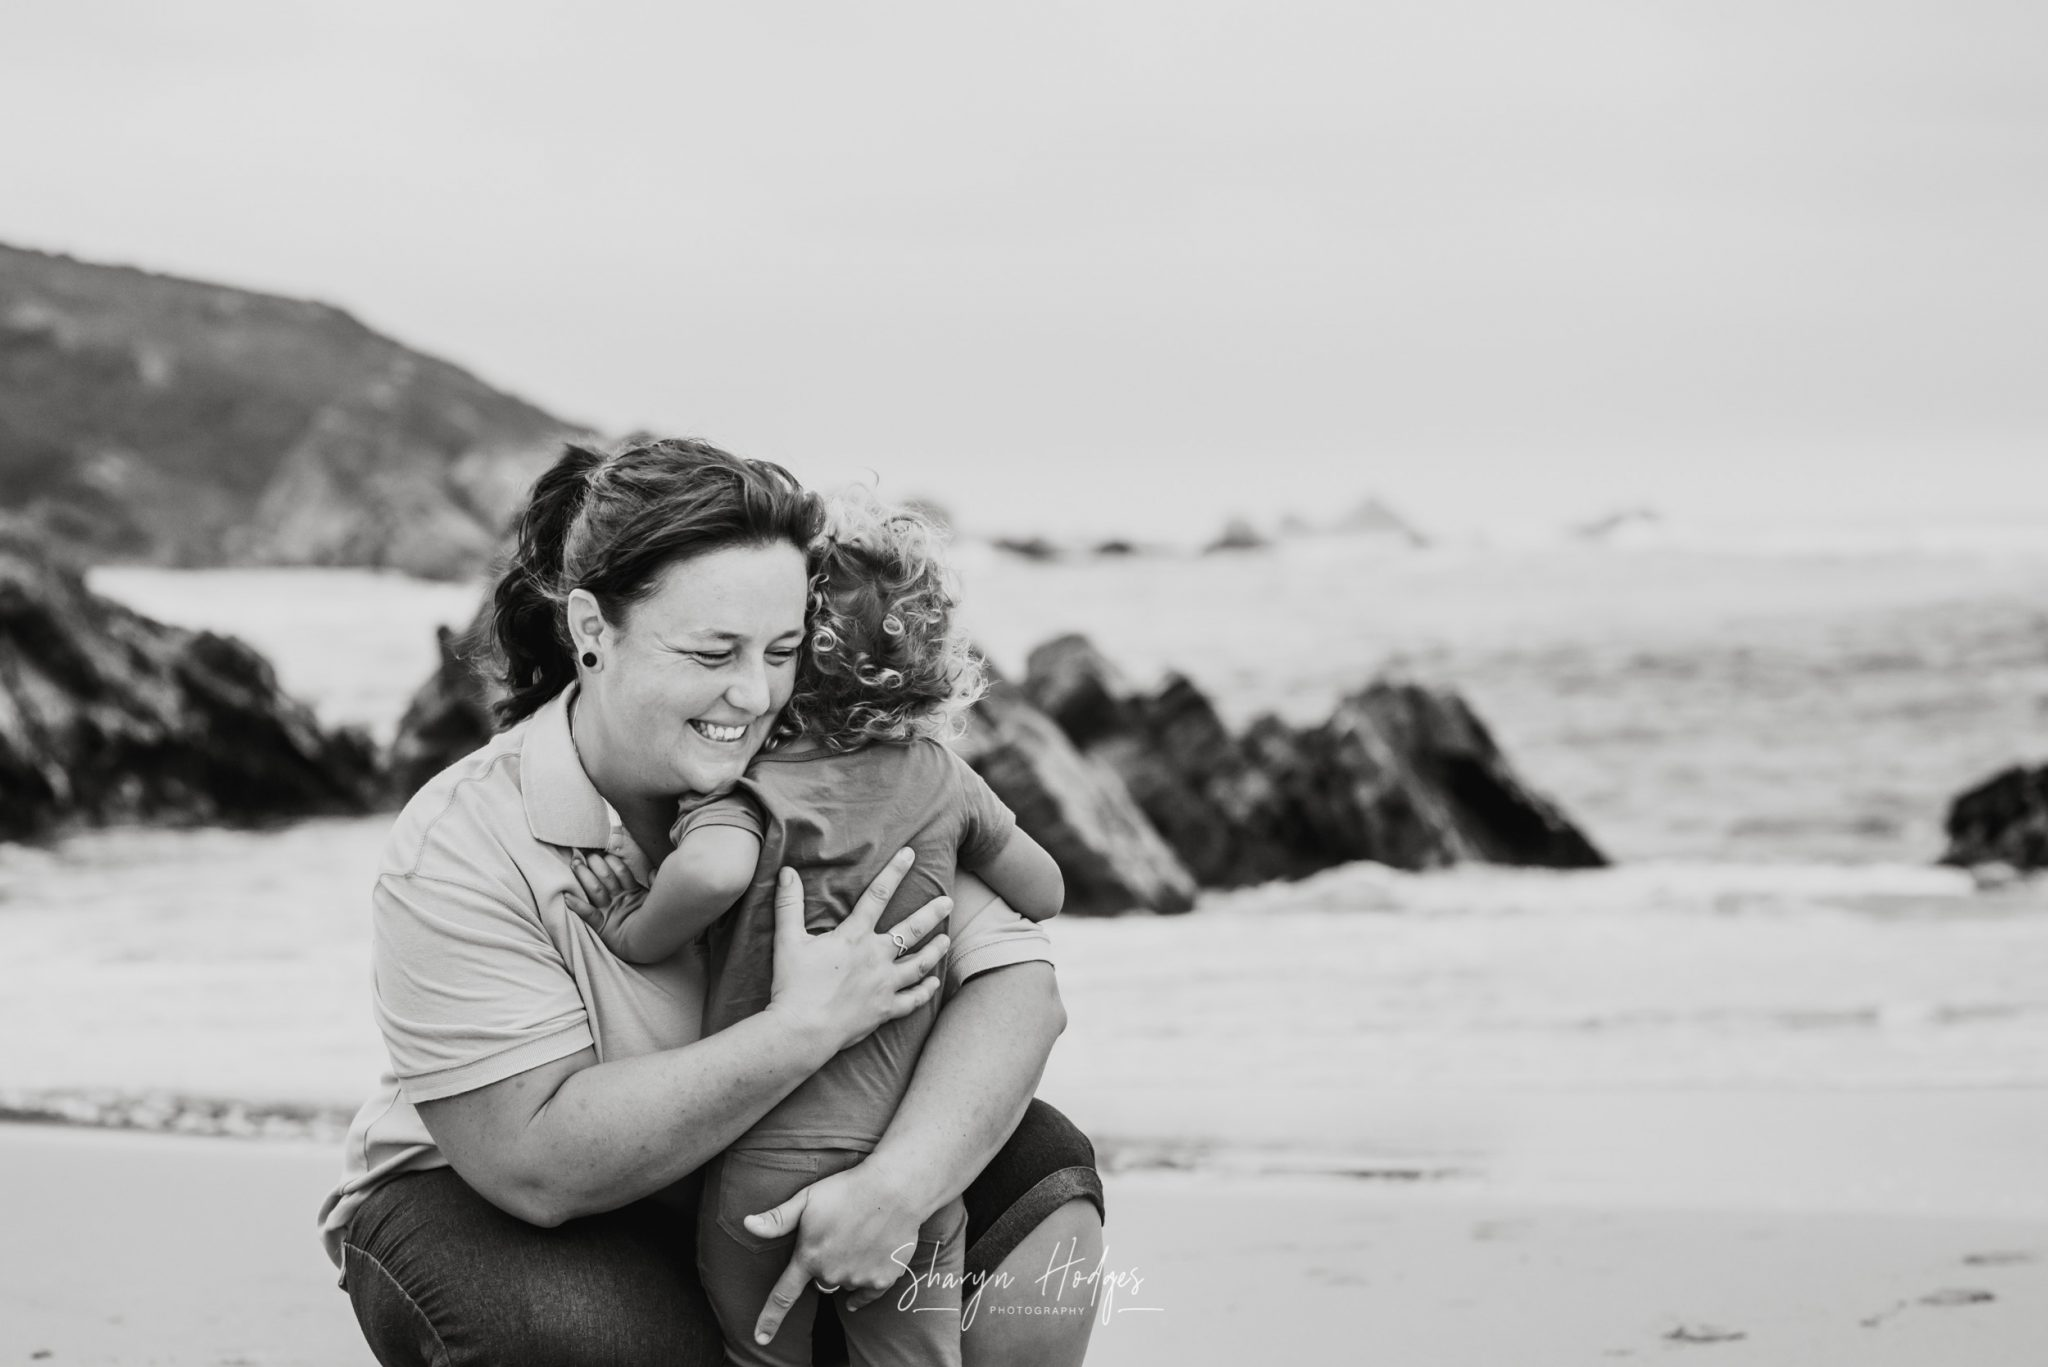 garden route photographer, Plettenberg bay family photography, Sharyn Hodges, sunrise shoot, beach shoot, bespoke, plett, Knysna, family shoot ideas